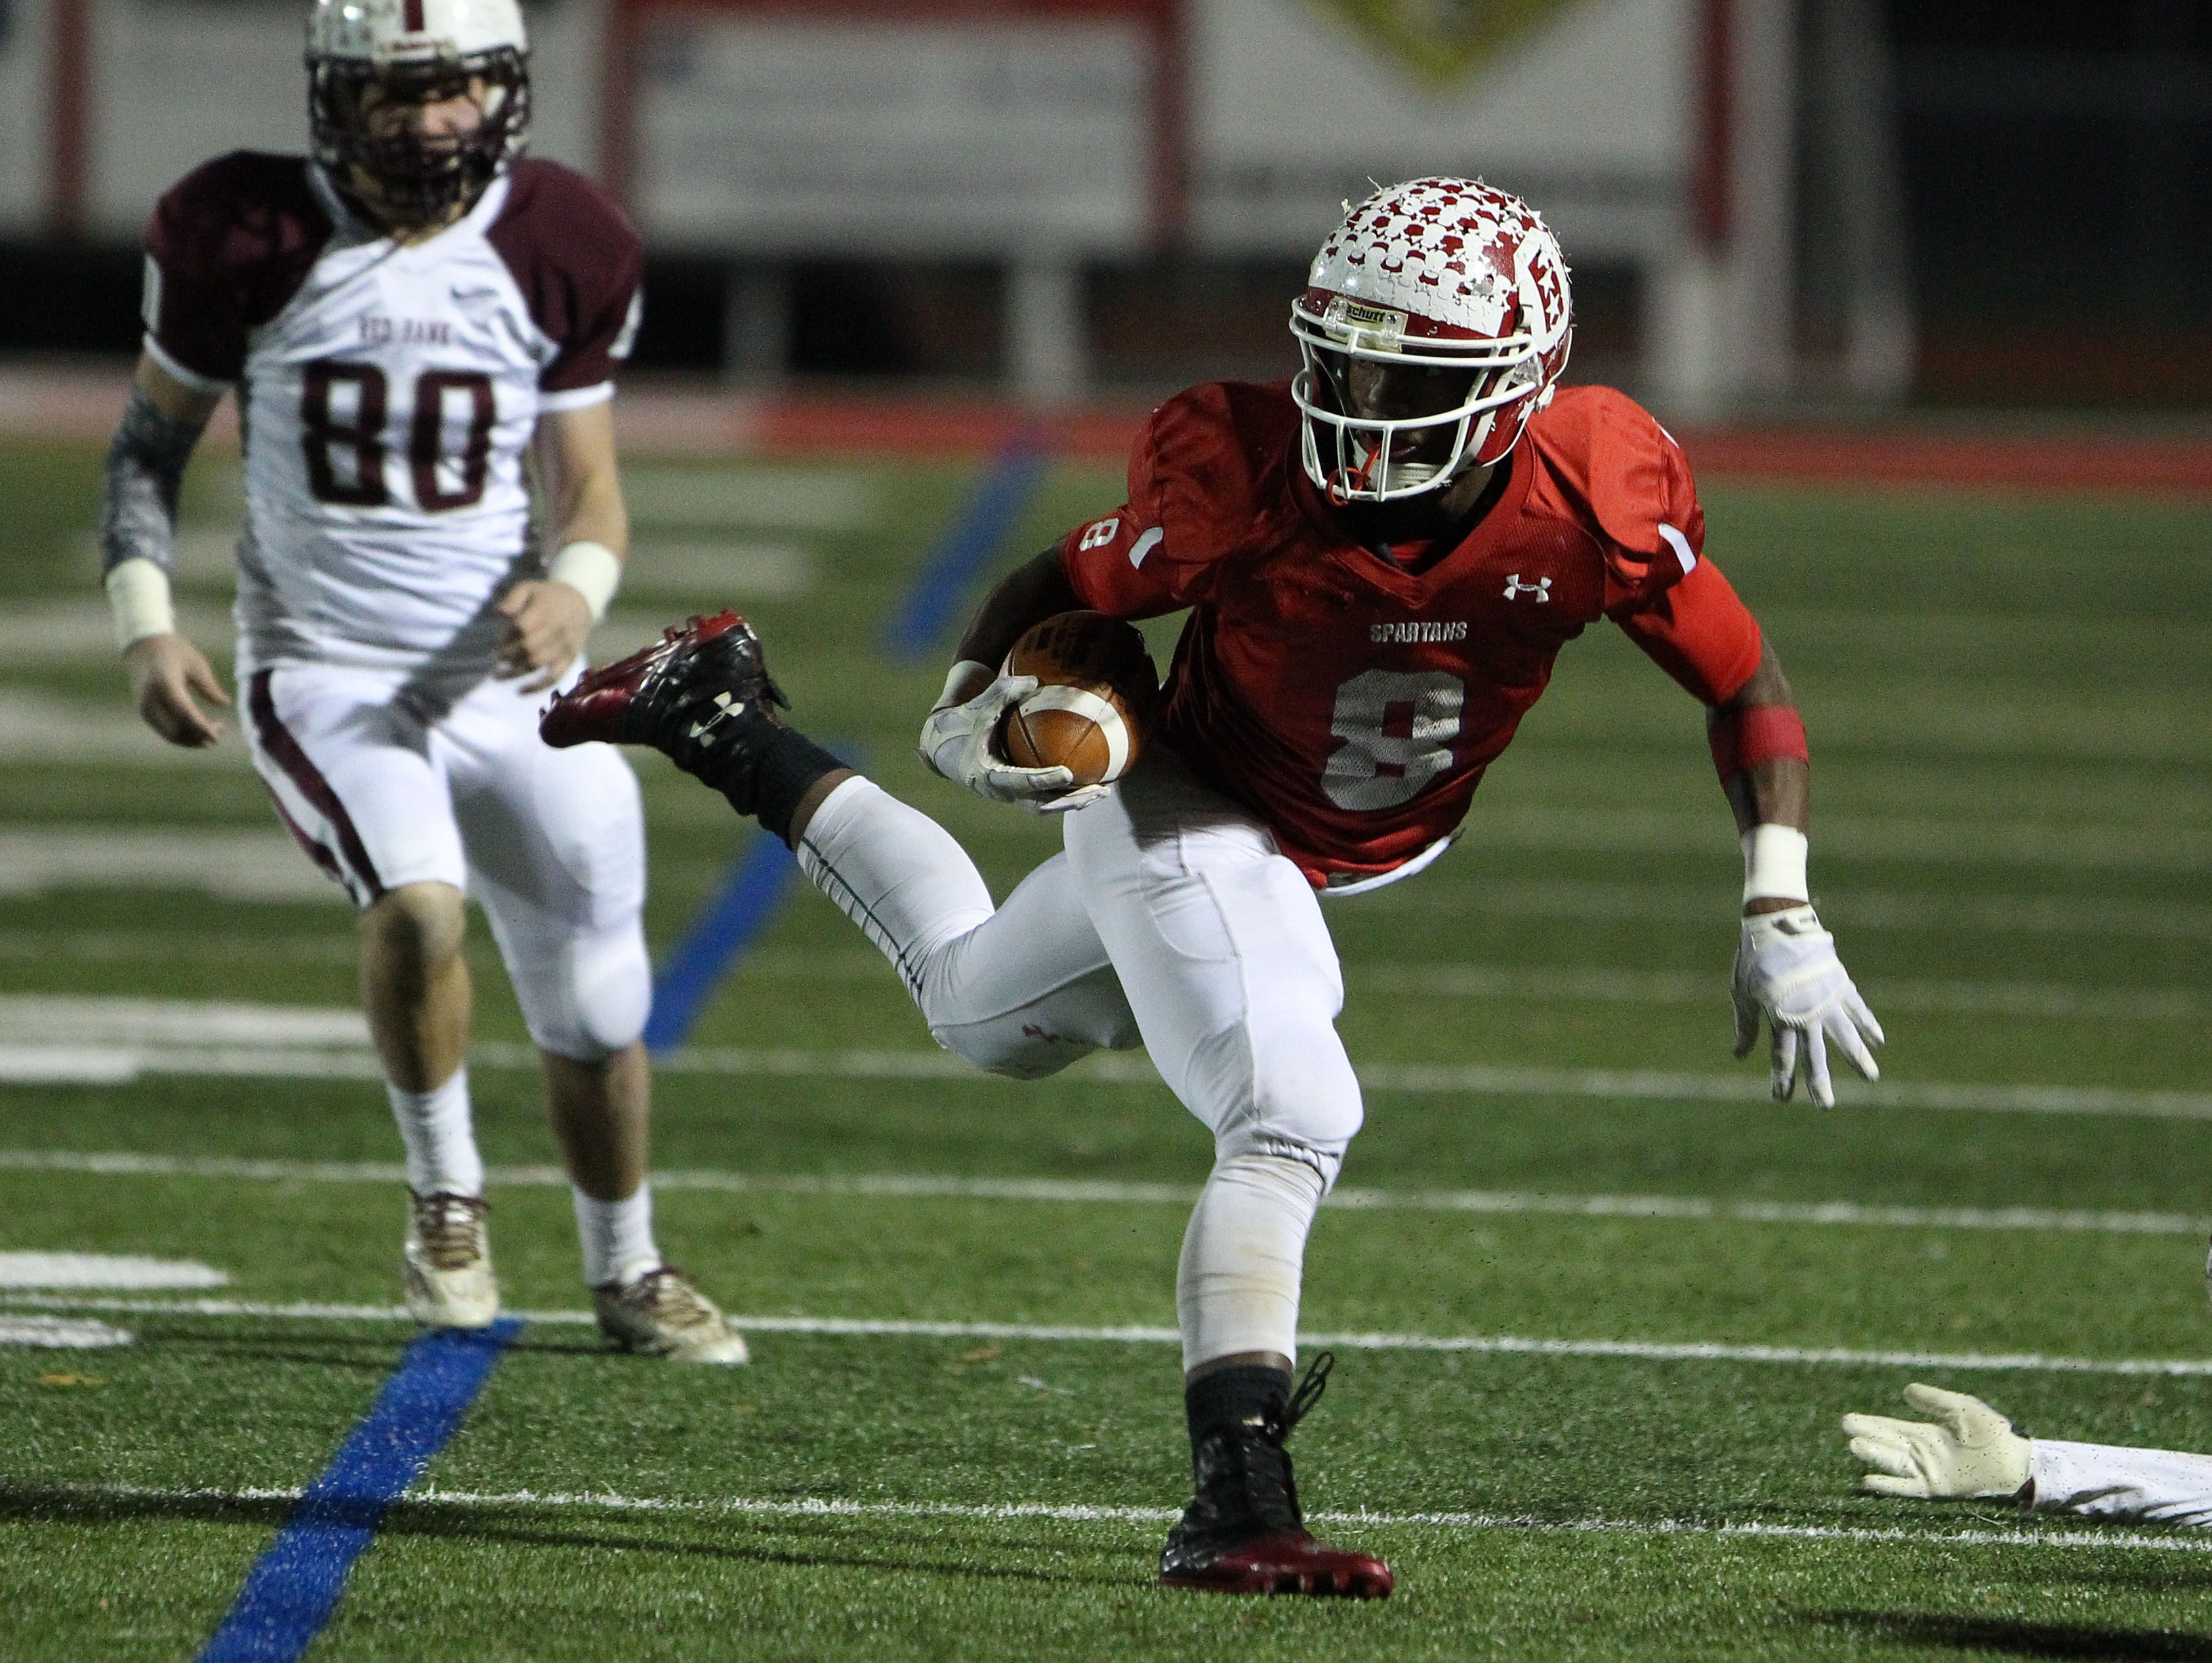 Ocean's Tyler Thompson (8) carries the ball against Red Bank earlier this season.